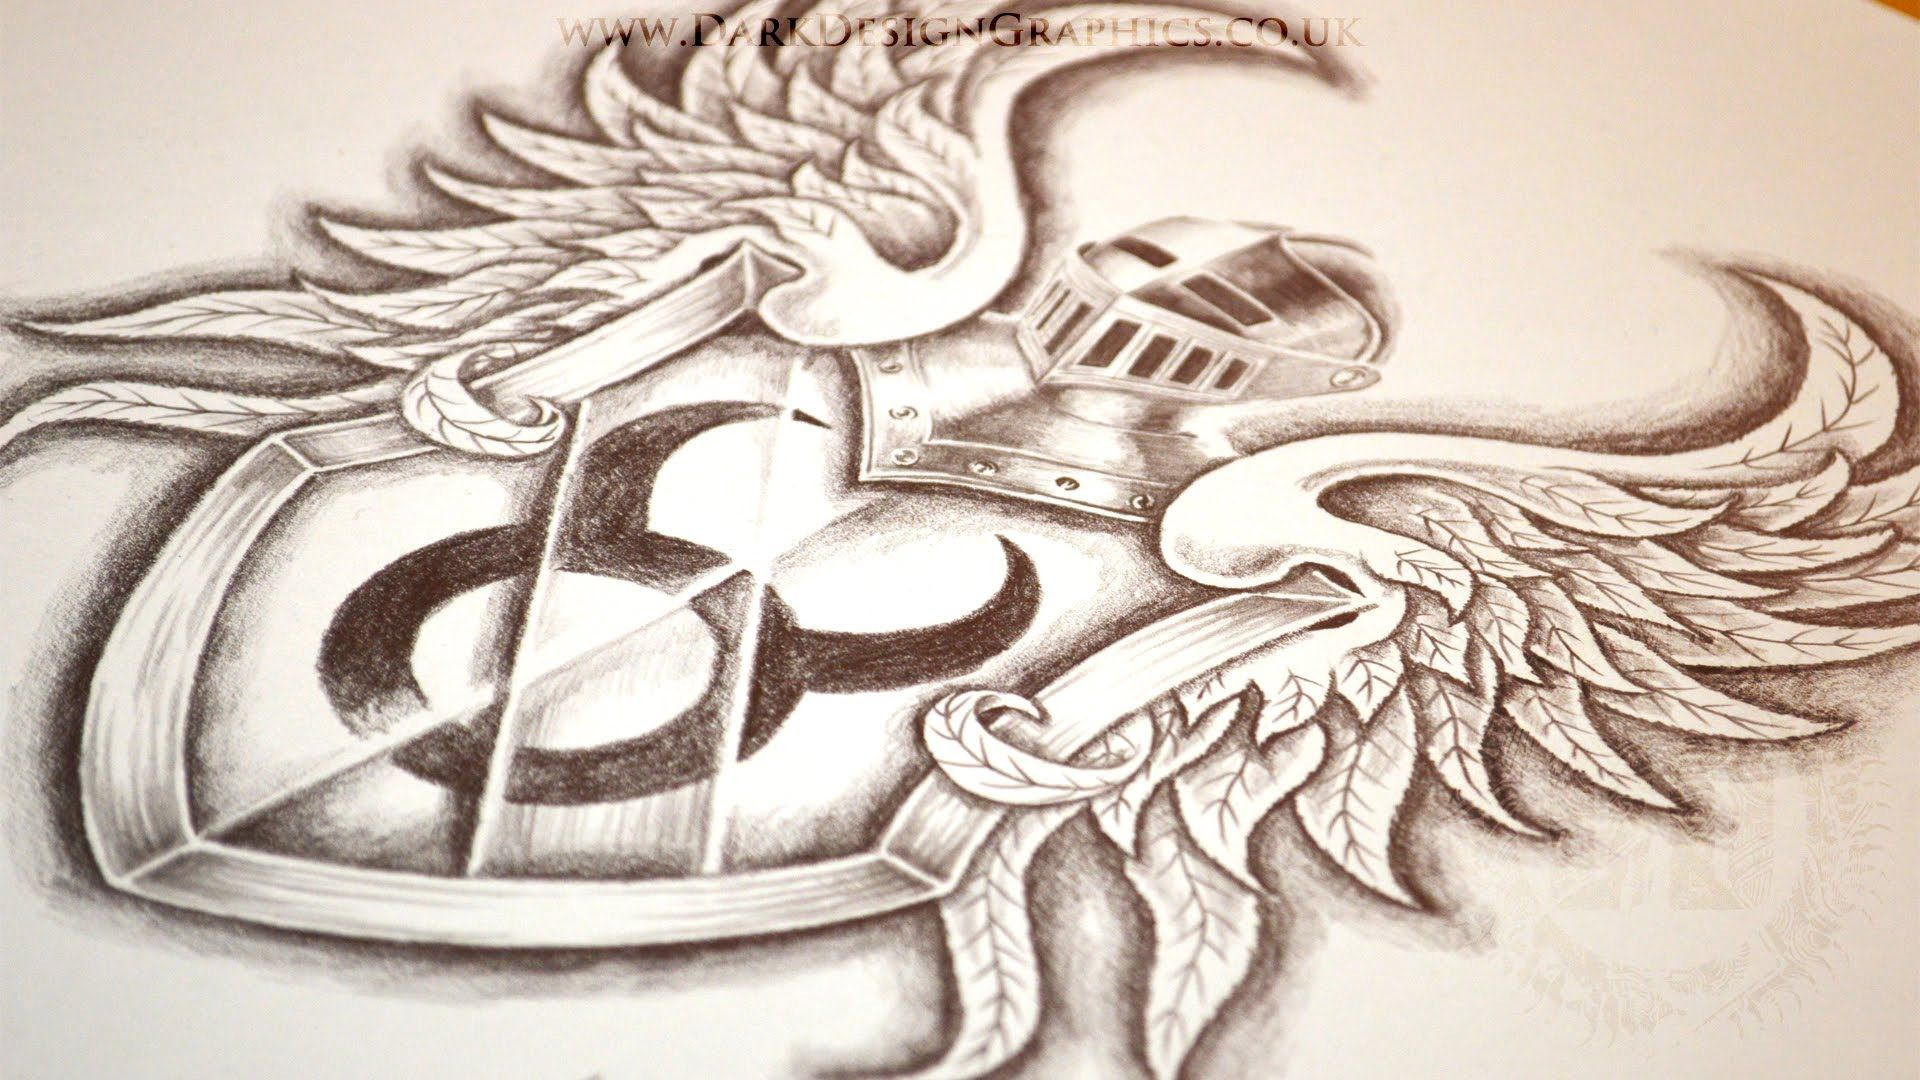 Taurus Tattoo Design Speed Drawing Youtube Taurus Tattoos Bow Tattoo Designs Skull Tattoo Design